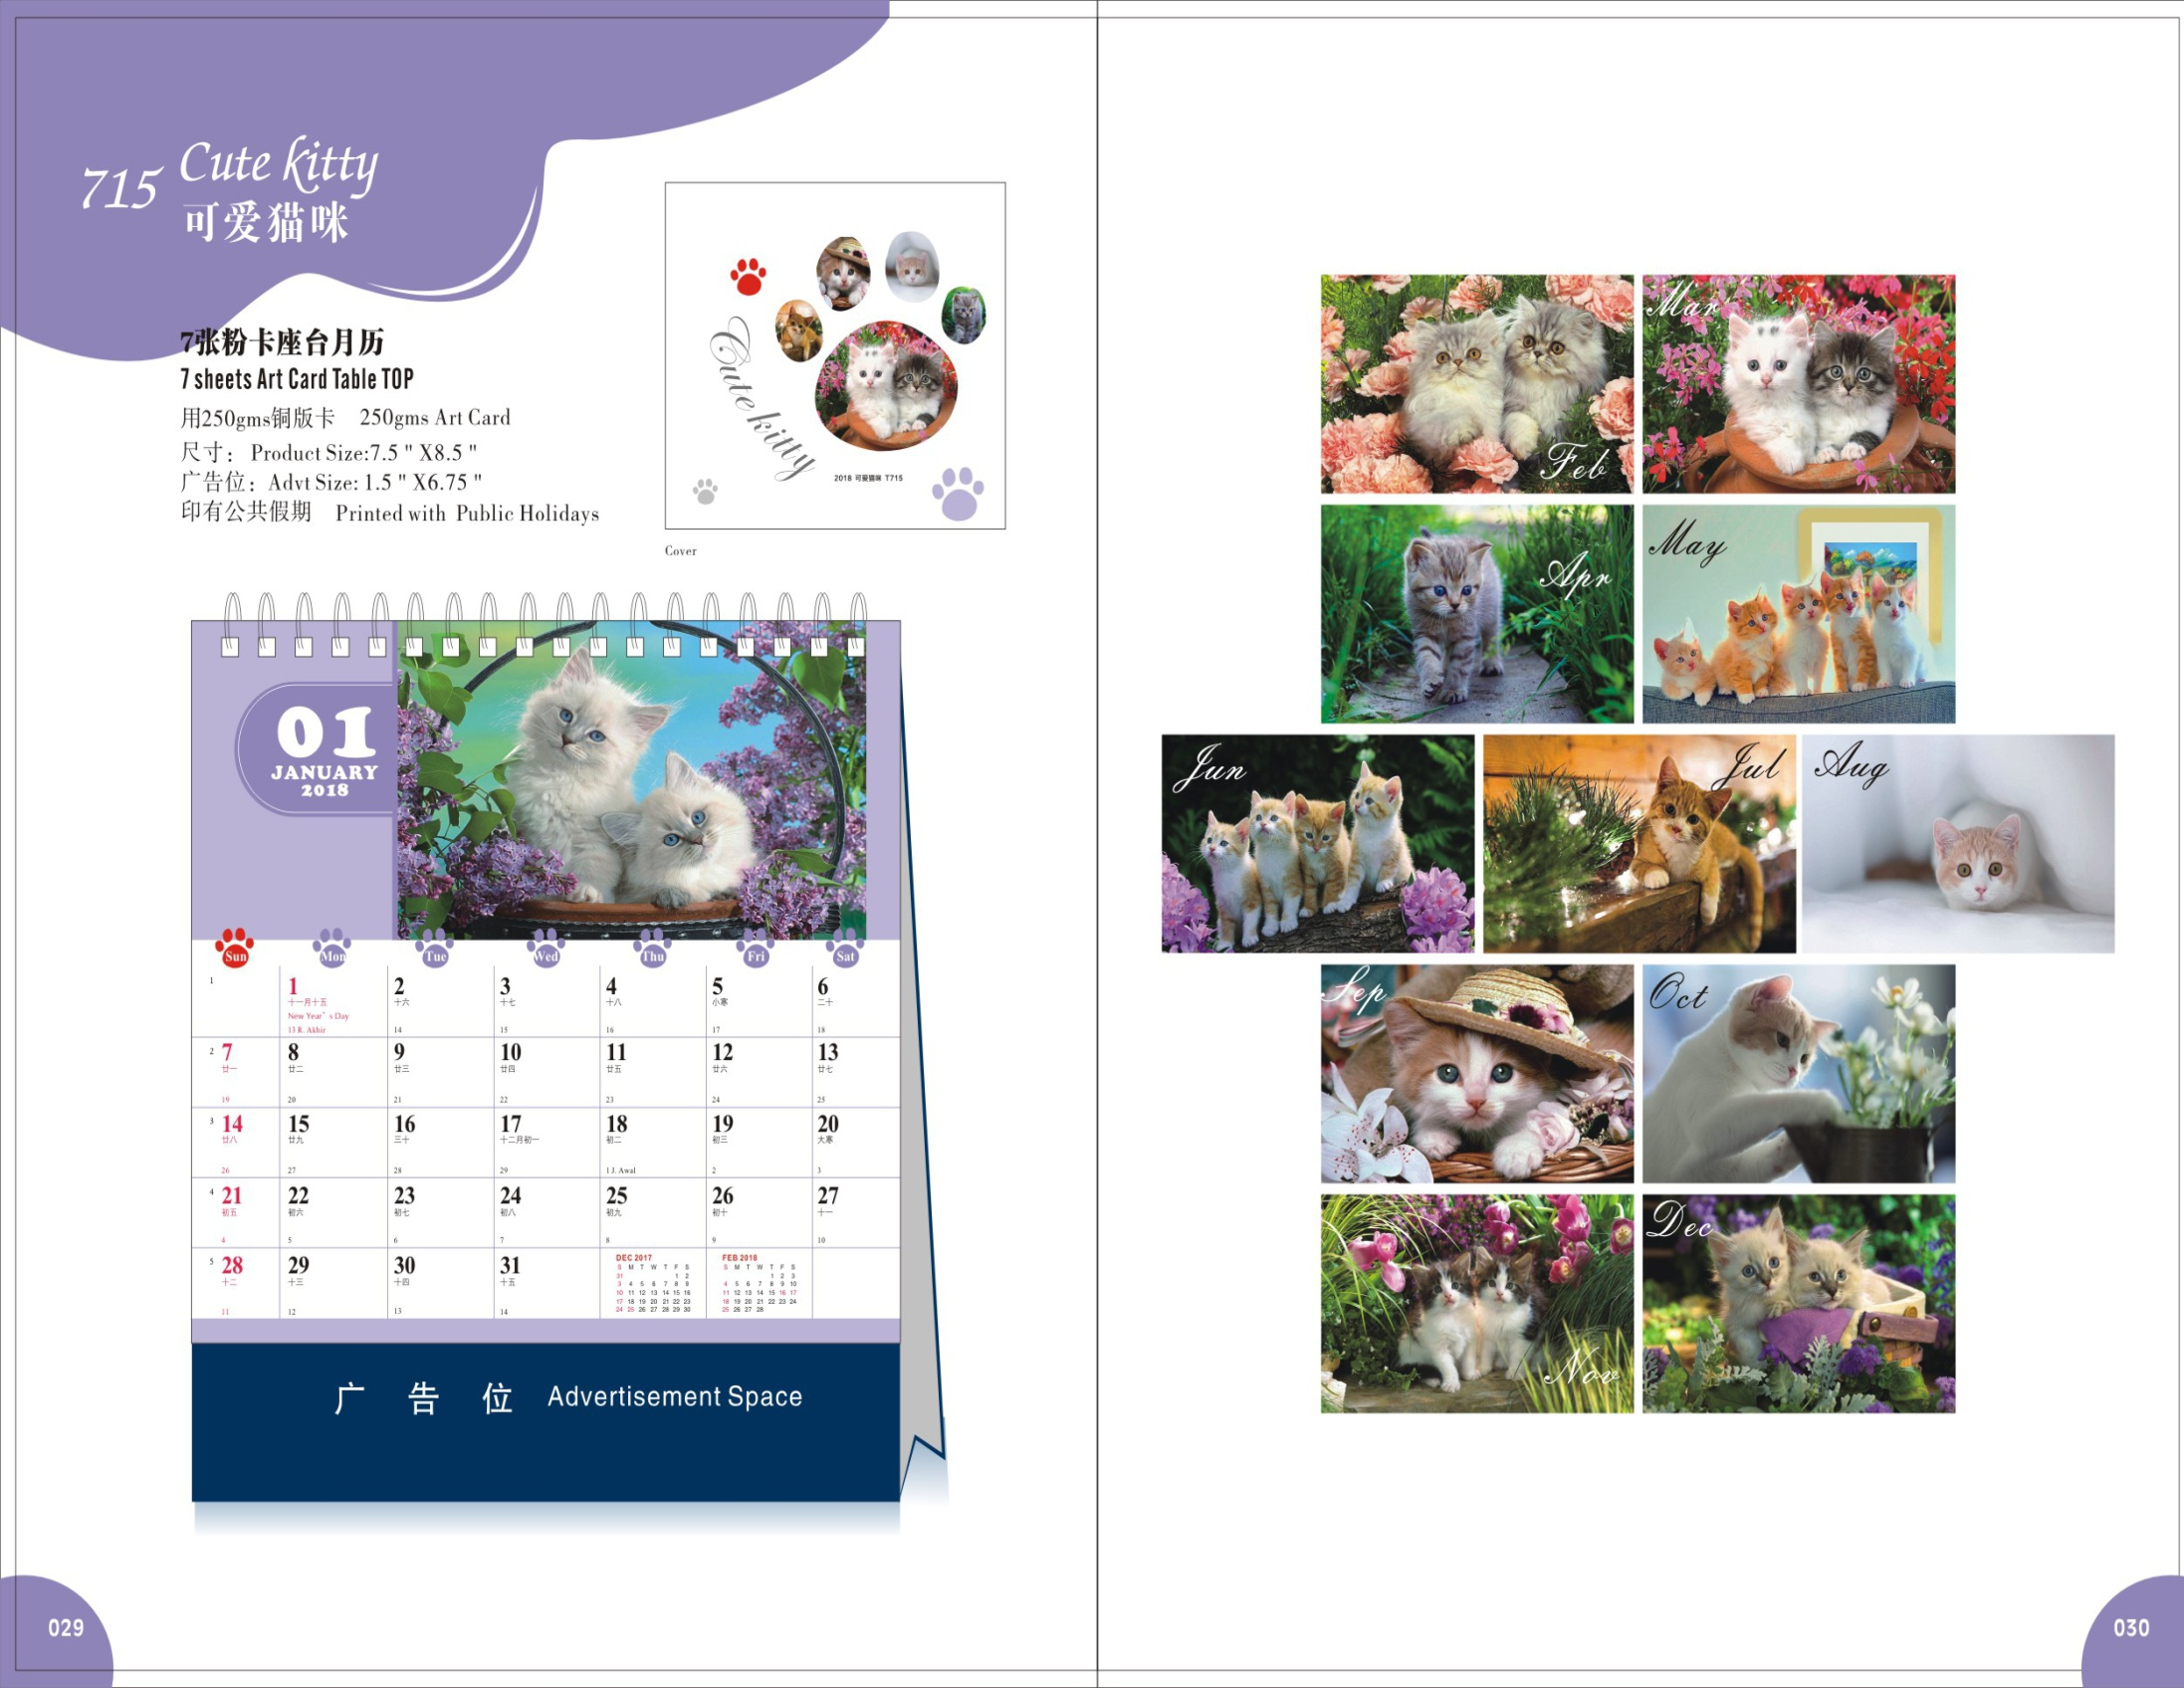 2018 Desk Calendar Cute kitty